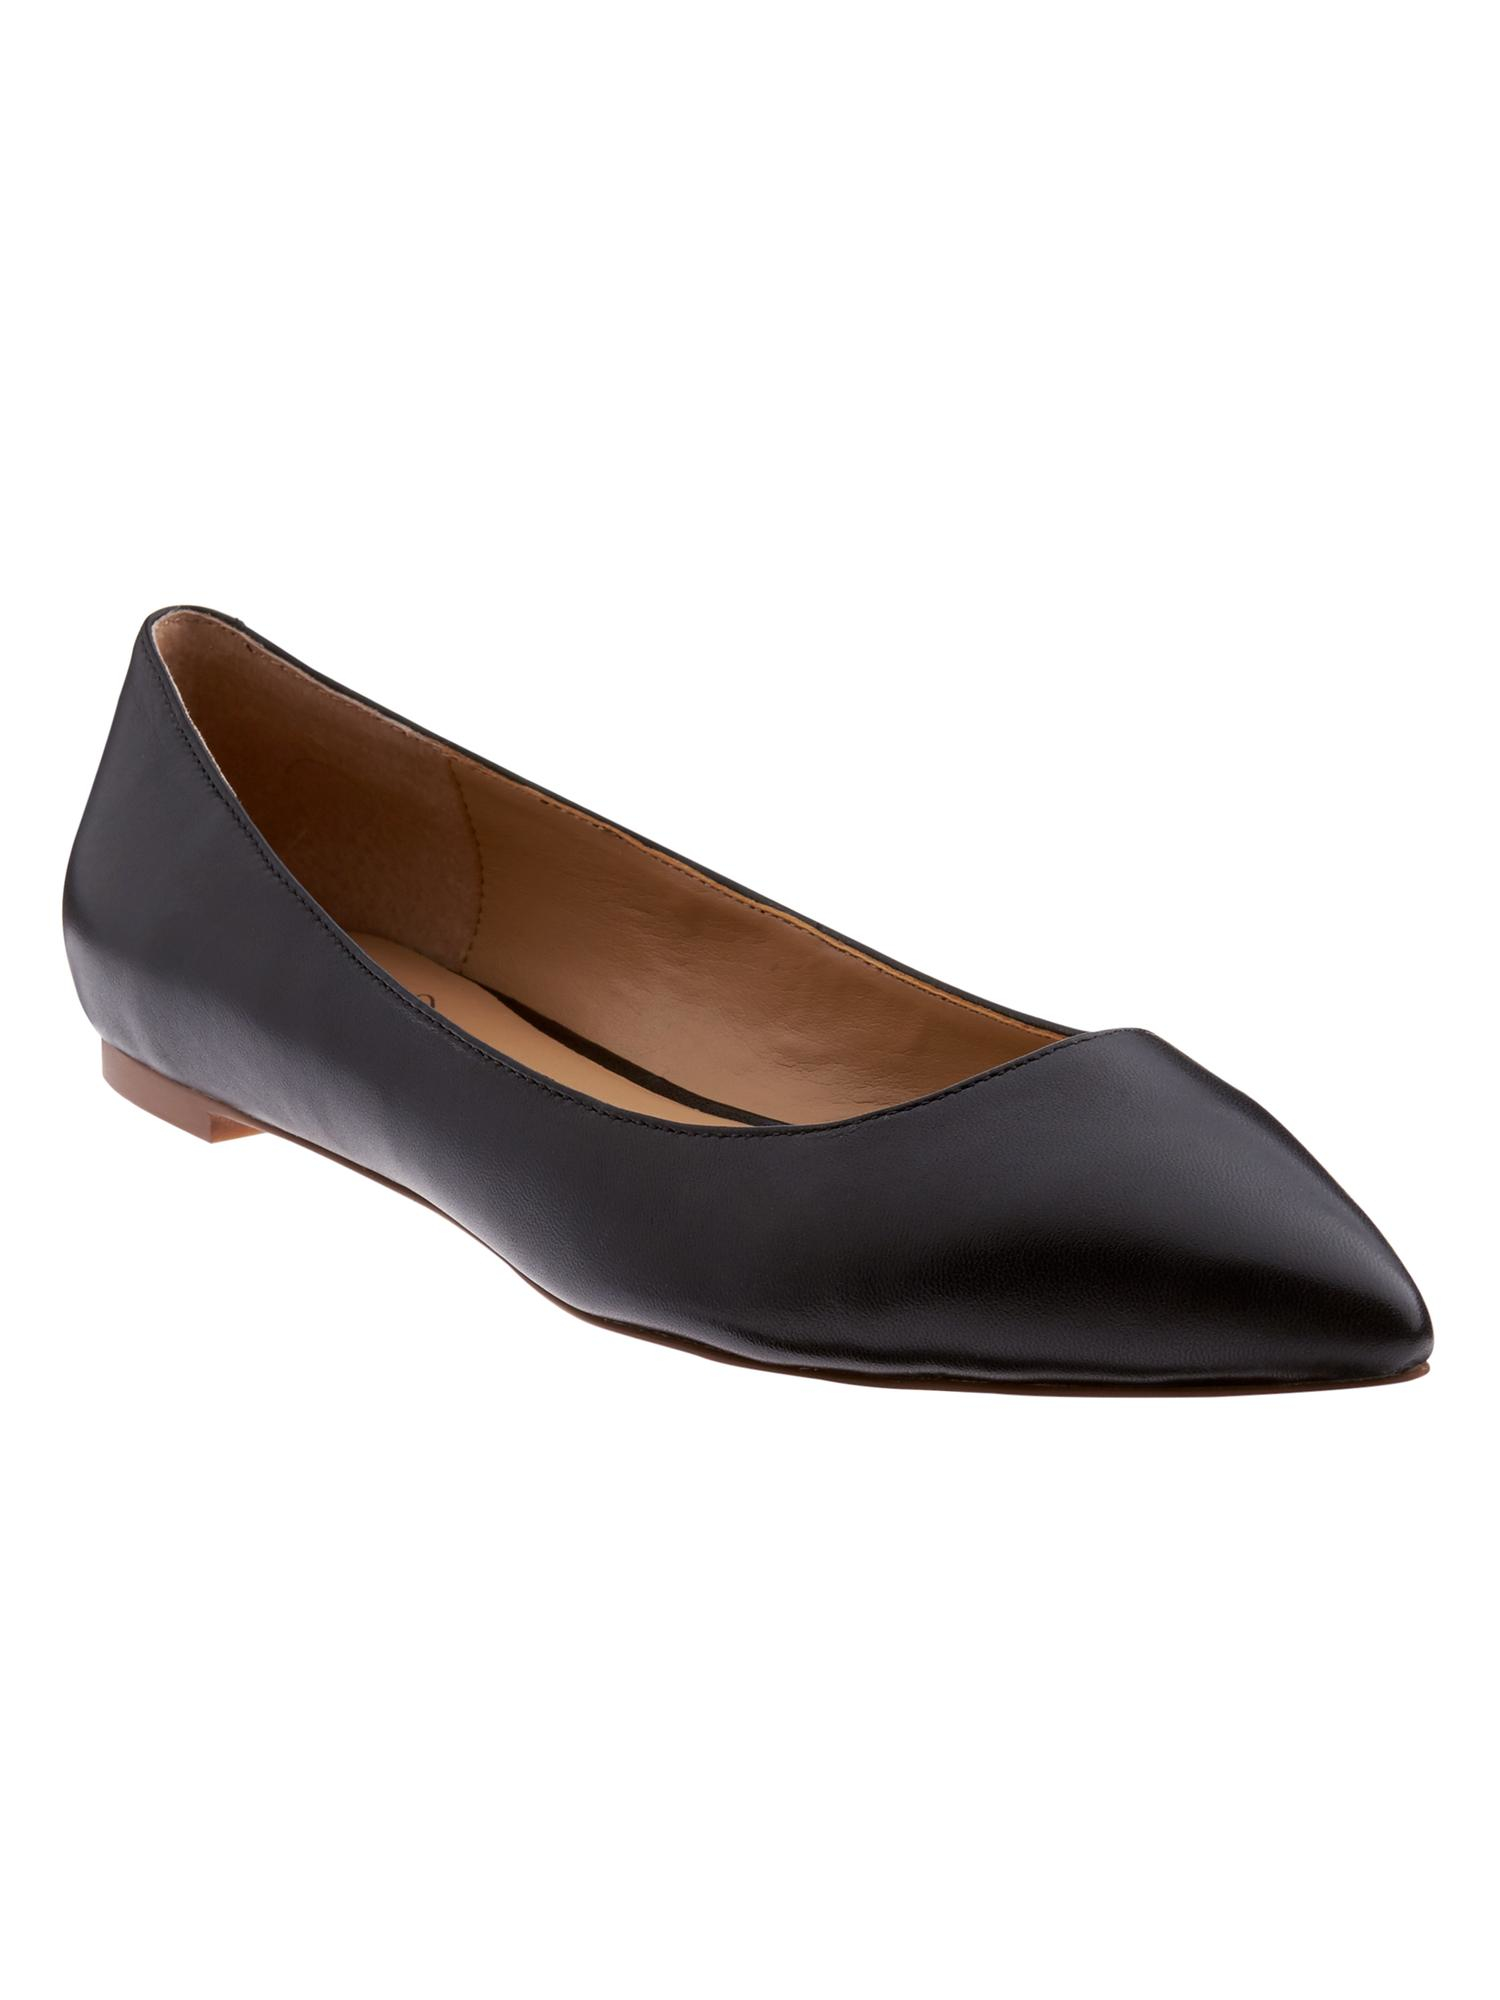 Women's flats in a rainbow of different colors up the ante when it comes to what's #trending. Stock your shoe wardrobe with go-tos from classic black flats to versatile nude flats. Women's flats serve your office and after-hours attire brilliantly.